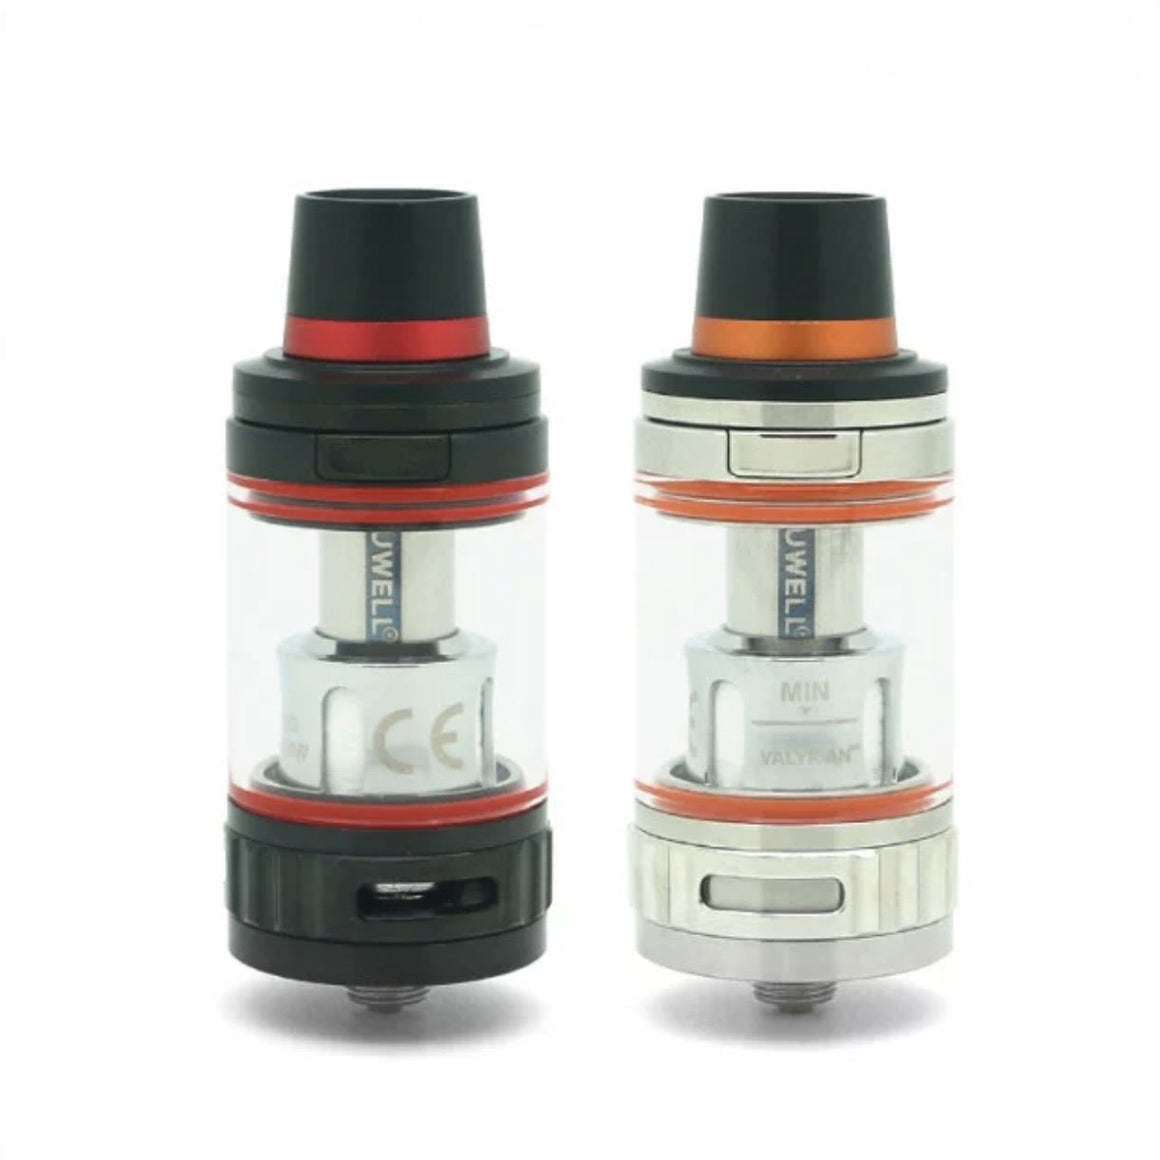 Uwell Accessories U-Well Valyrian Sub-Ohm Tank